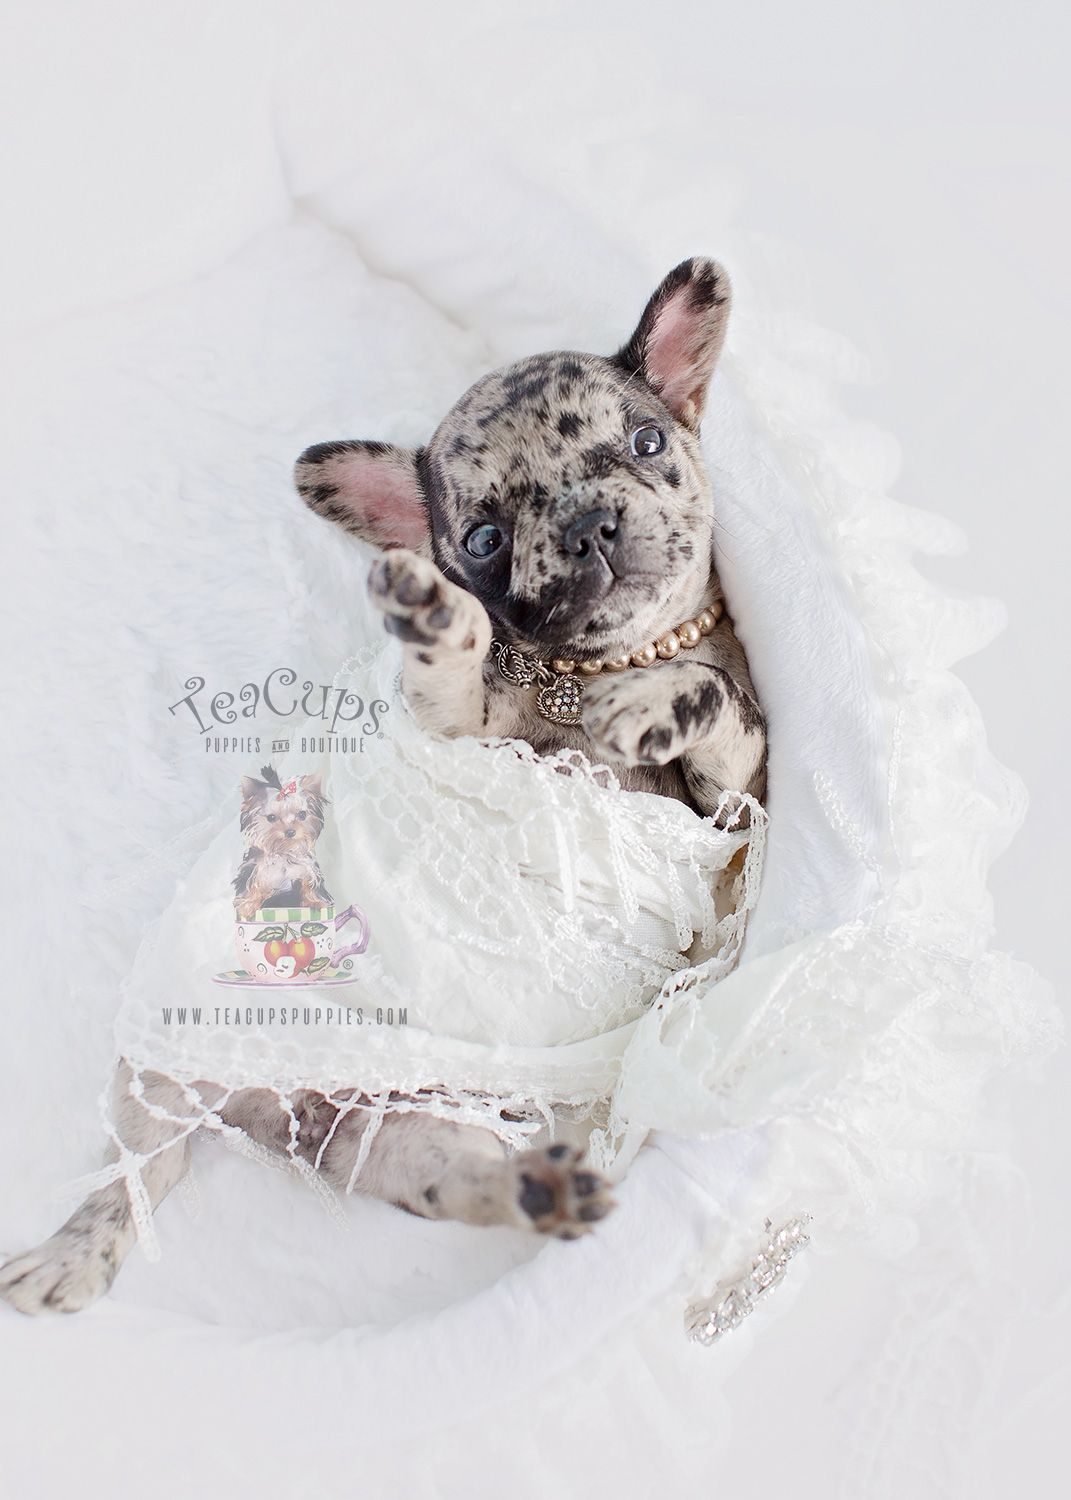 Rare And Beautiful French Bulldog Puppy By Www Teacupspuppies Com